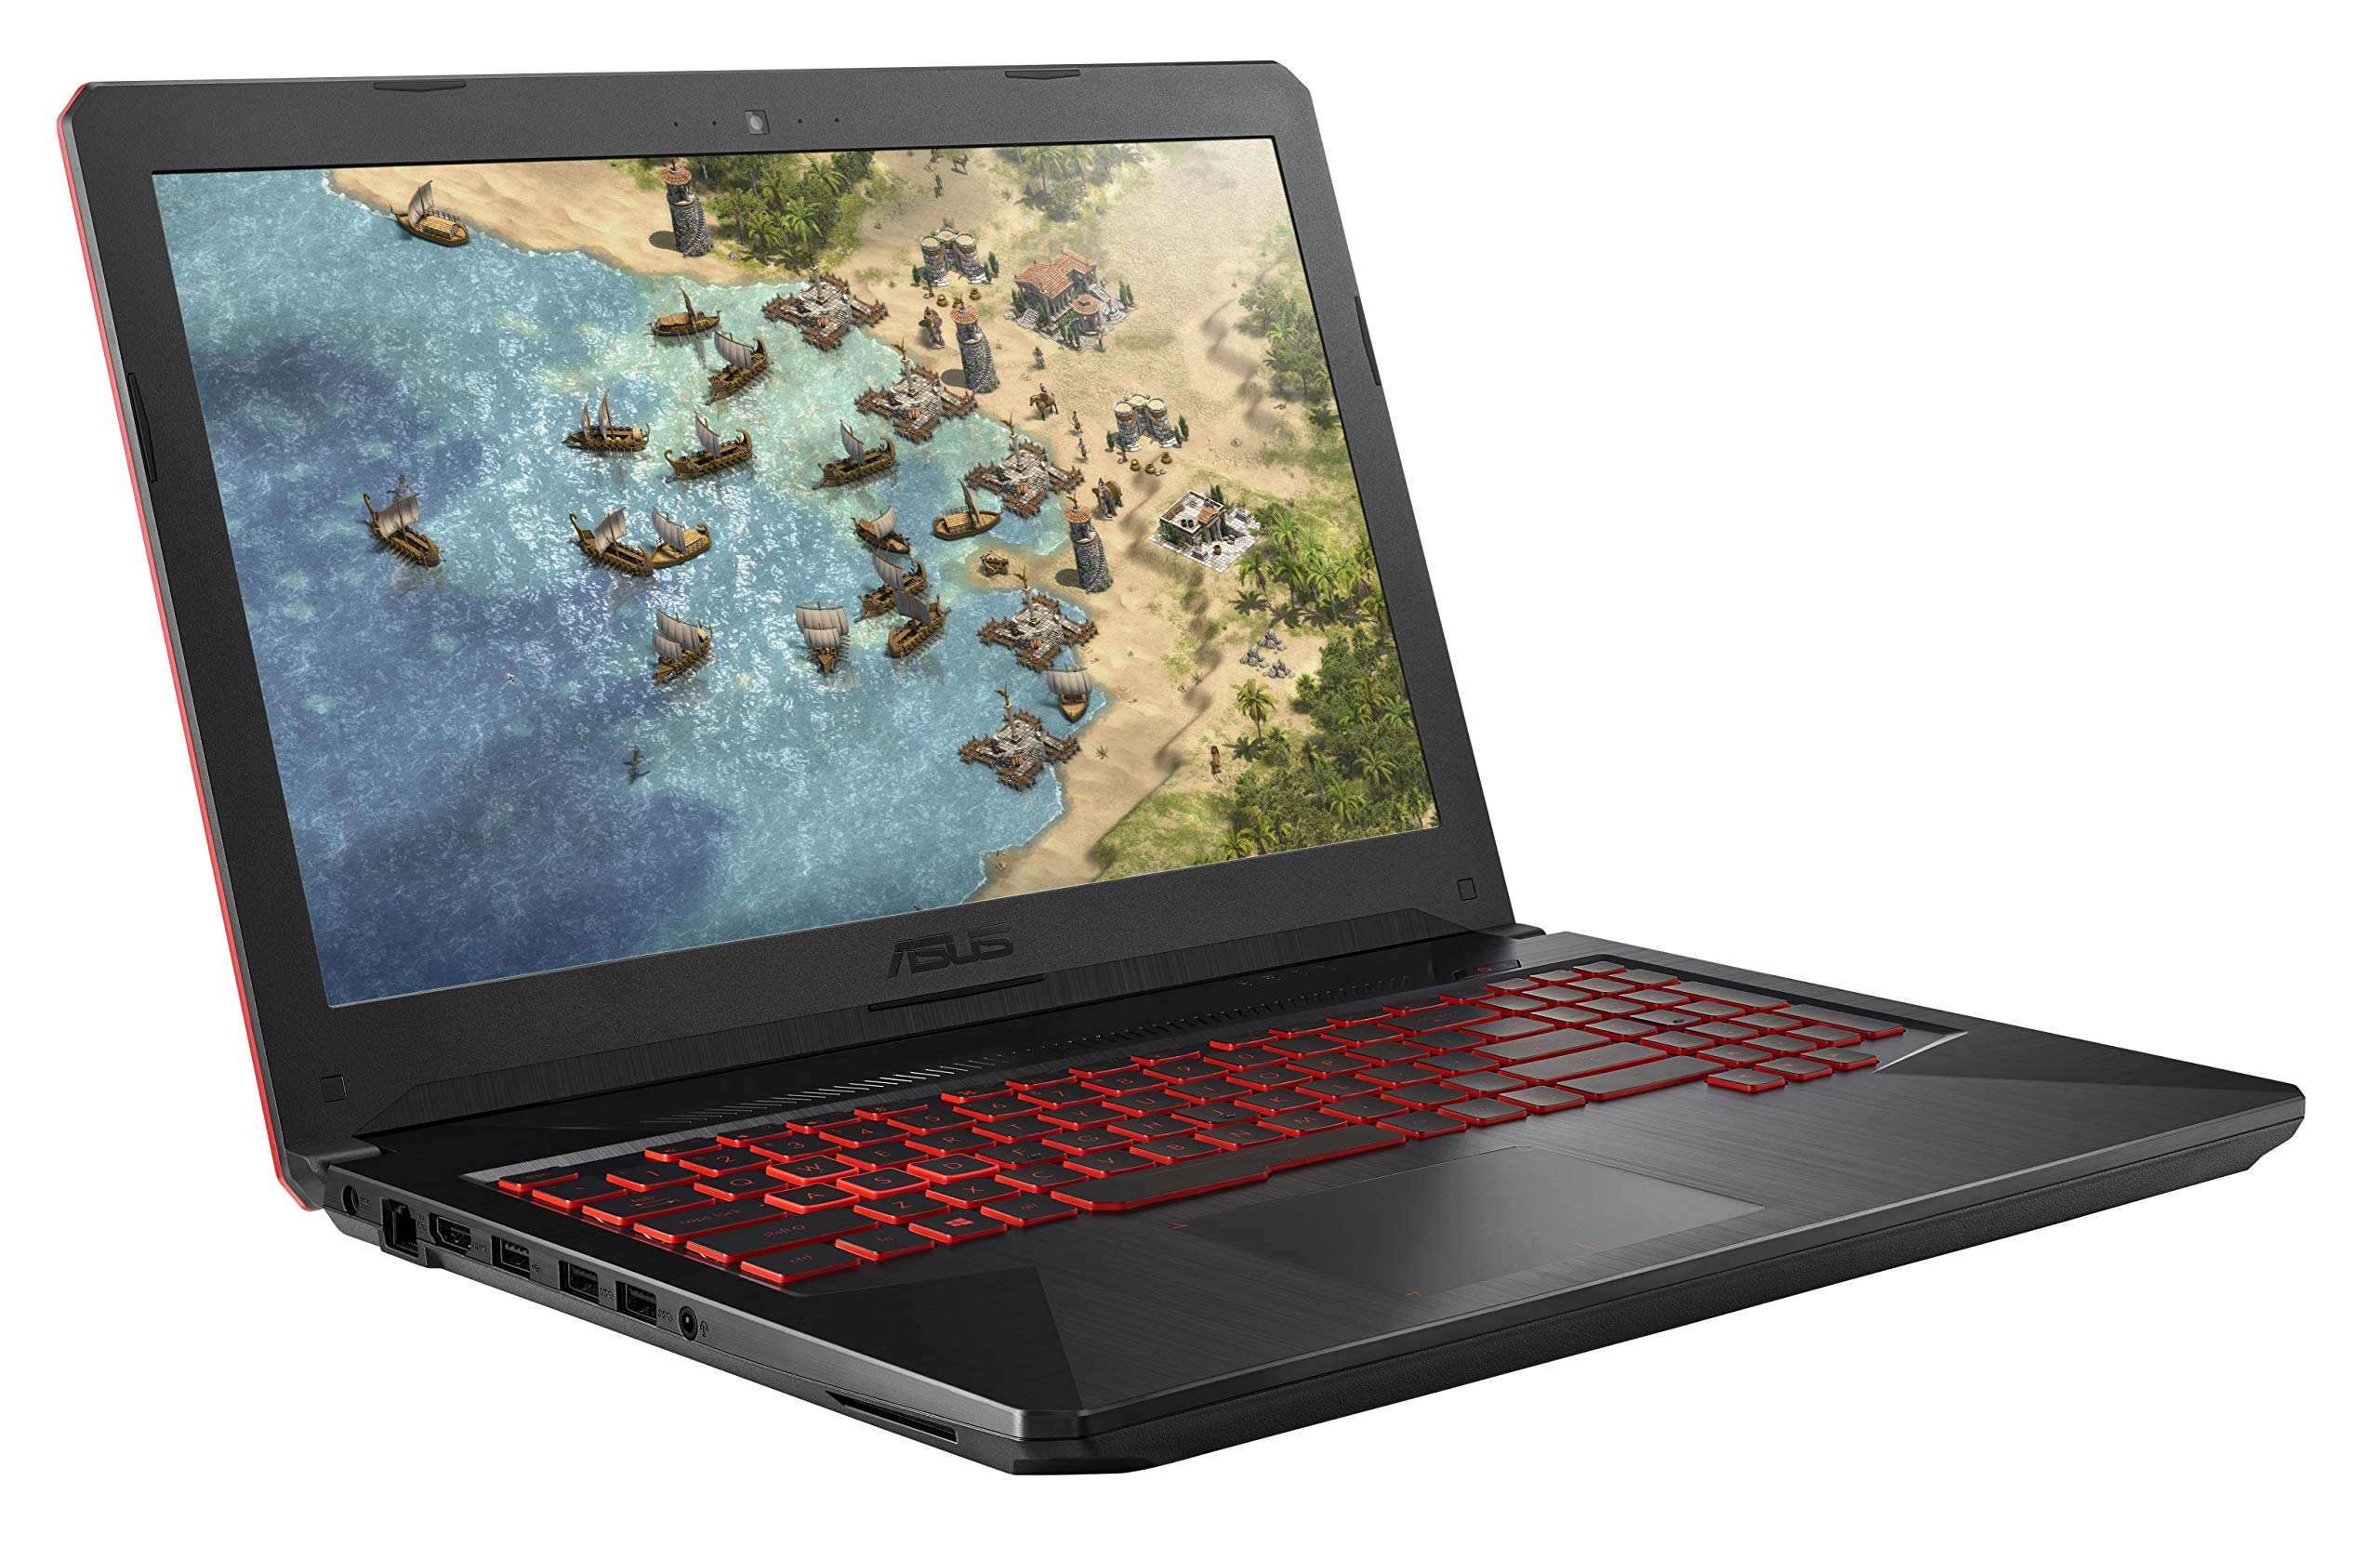 "ASUS TUF Thin & Light Gaming Laptop PC (FX504) 15.6"" Full HD, 8GB DDR4 2666 MHz 1"